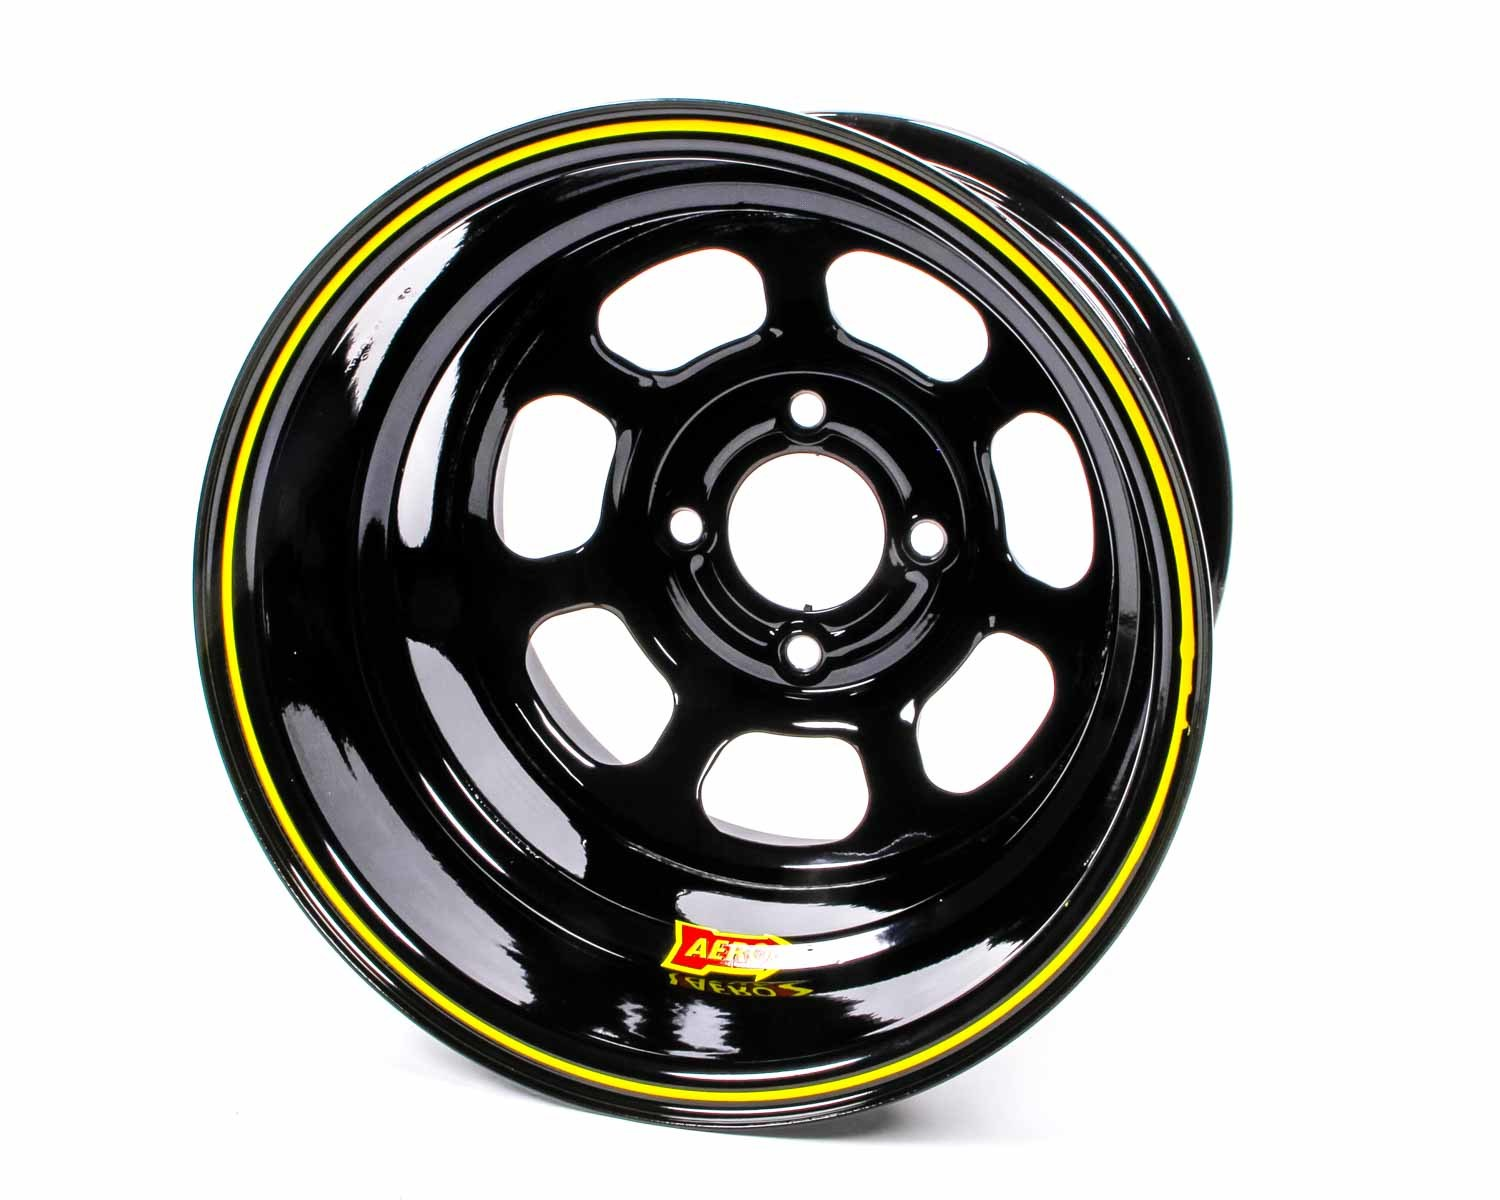 Aero Race 13x8 2in. 4.25 Black  Wheel